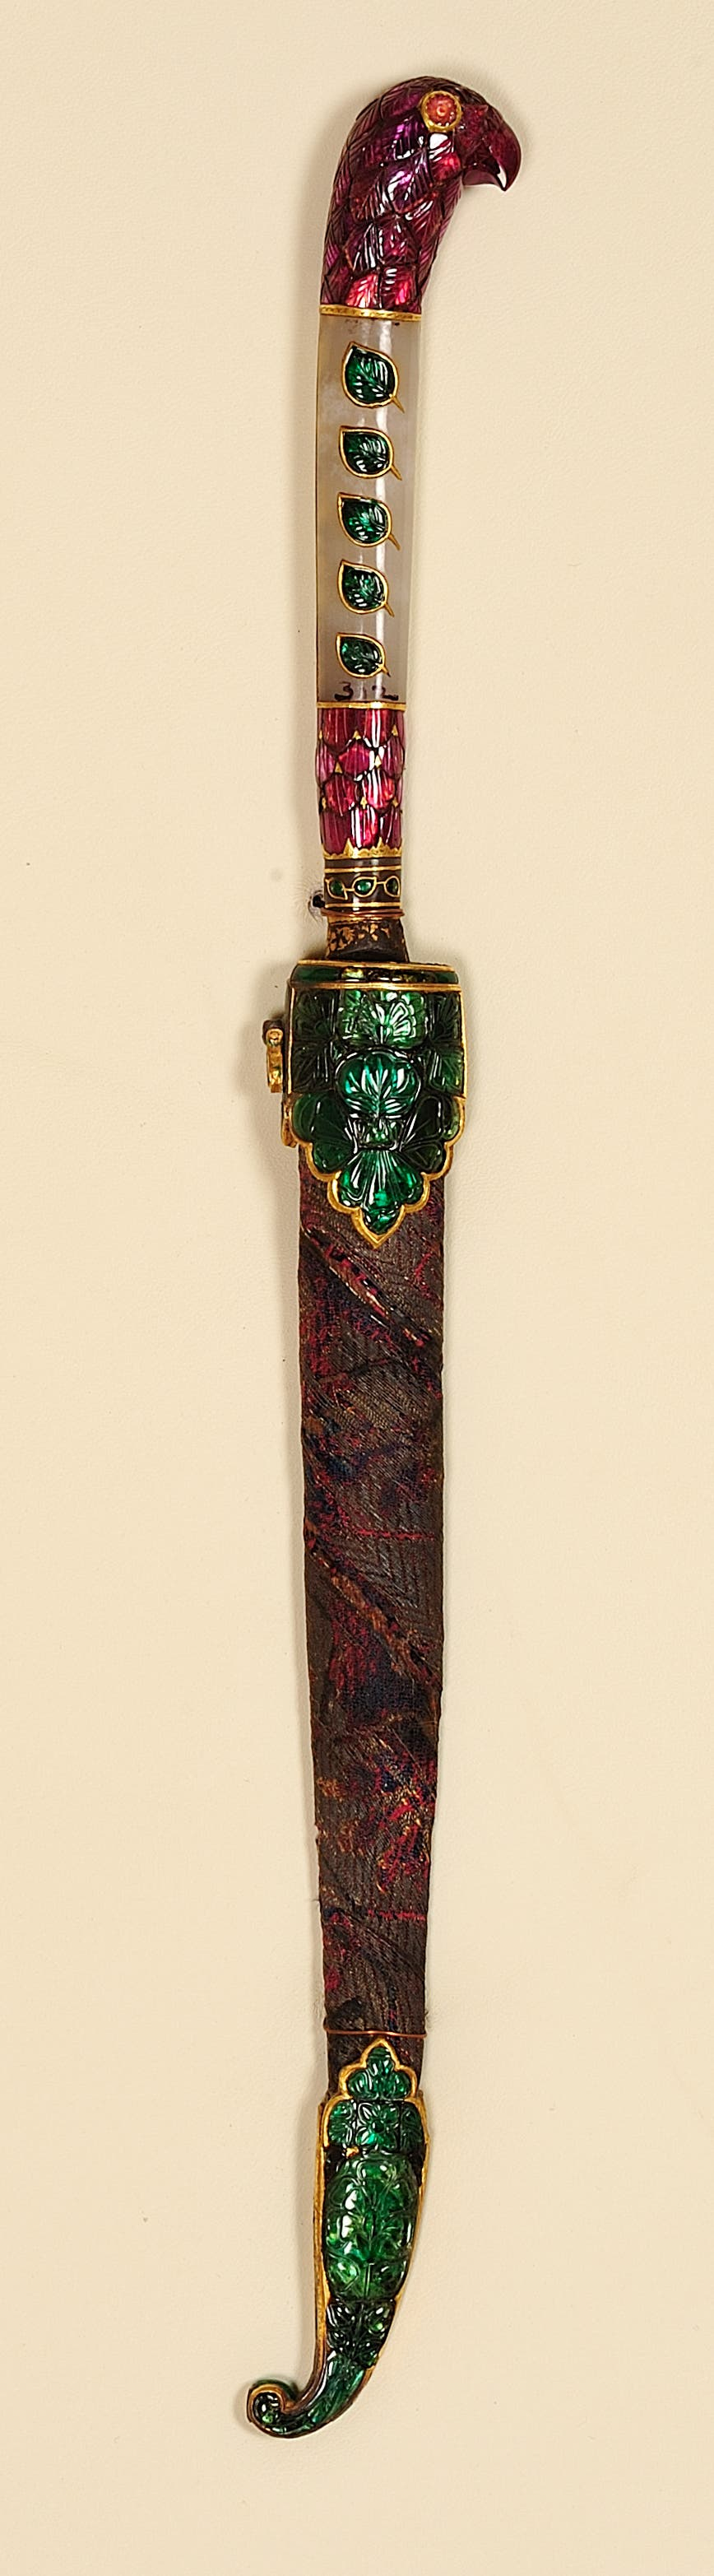 Fruit knife belonging to Queen Noorjahan with a jade hilt and inlaid with precious stones, 17th century. (Supplied)